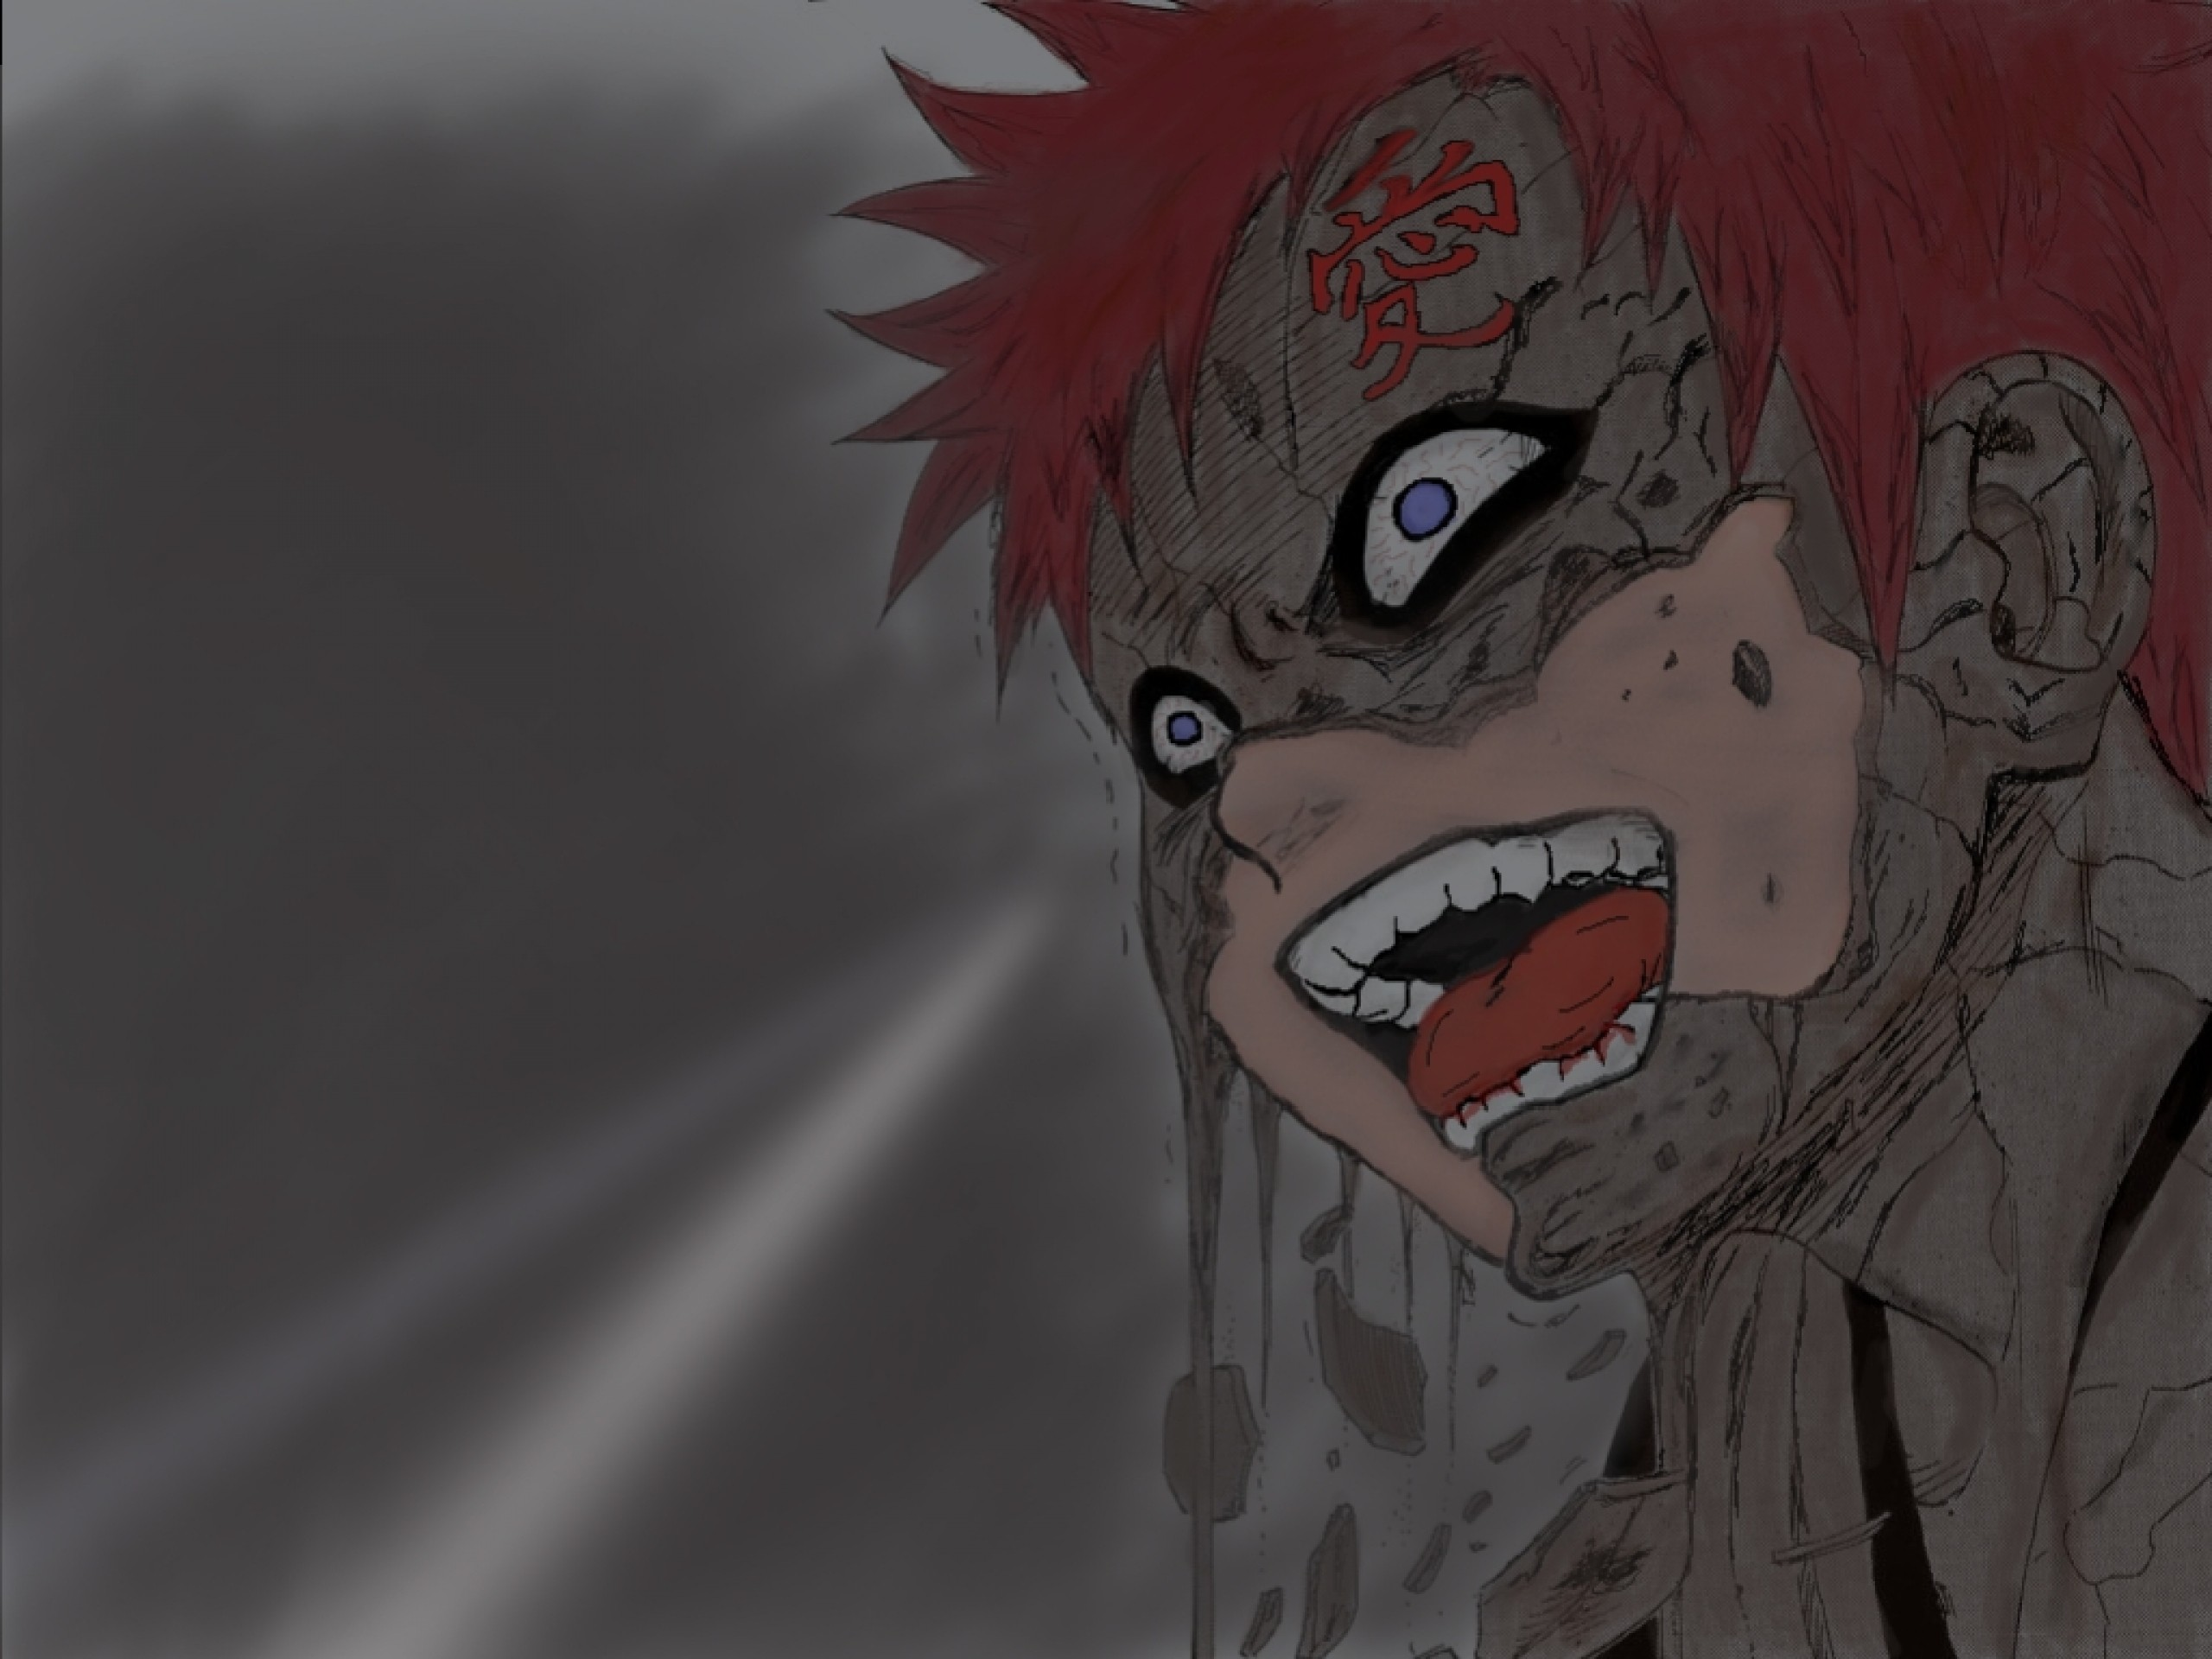 2560x1920 Gaara Jinchuuriki Wallpaper Images, HQ Backgrounds | HD wallpapers .